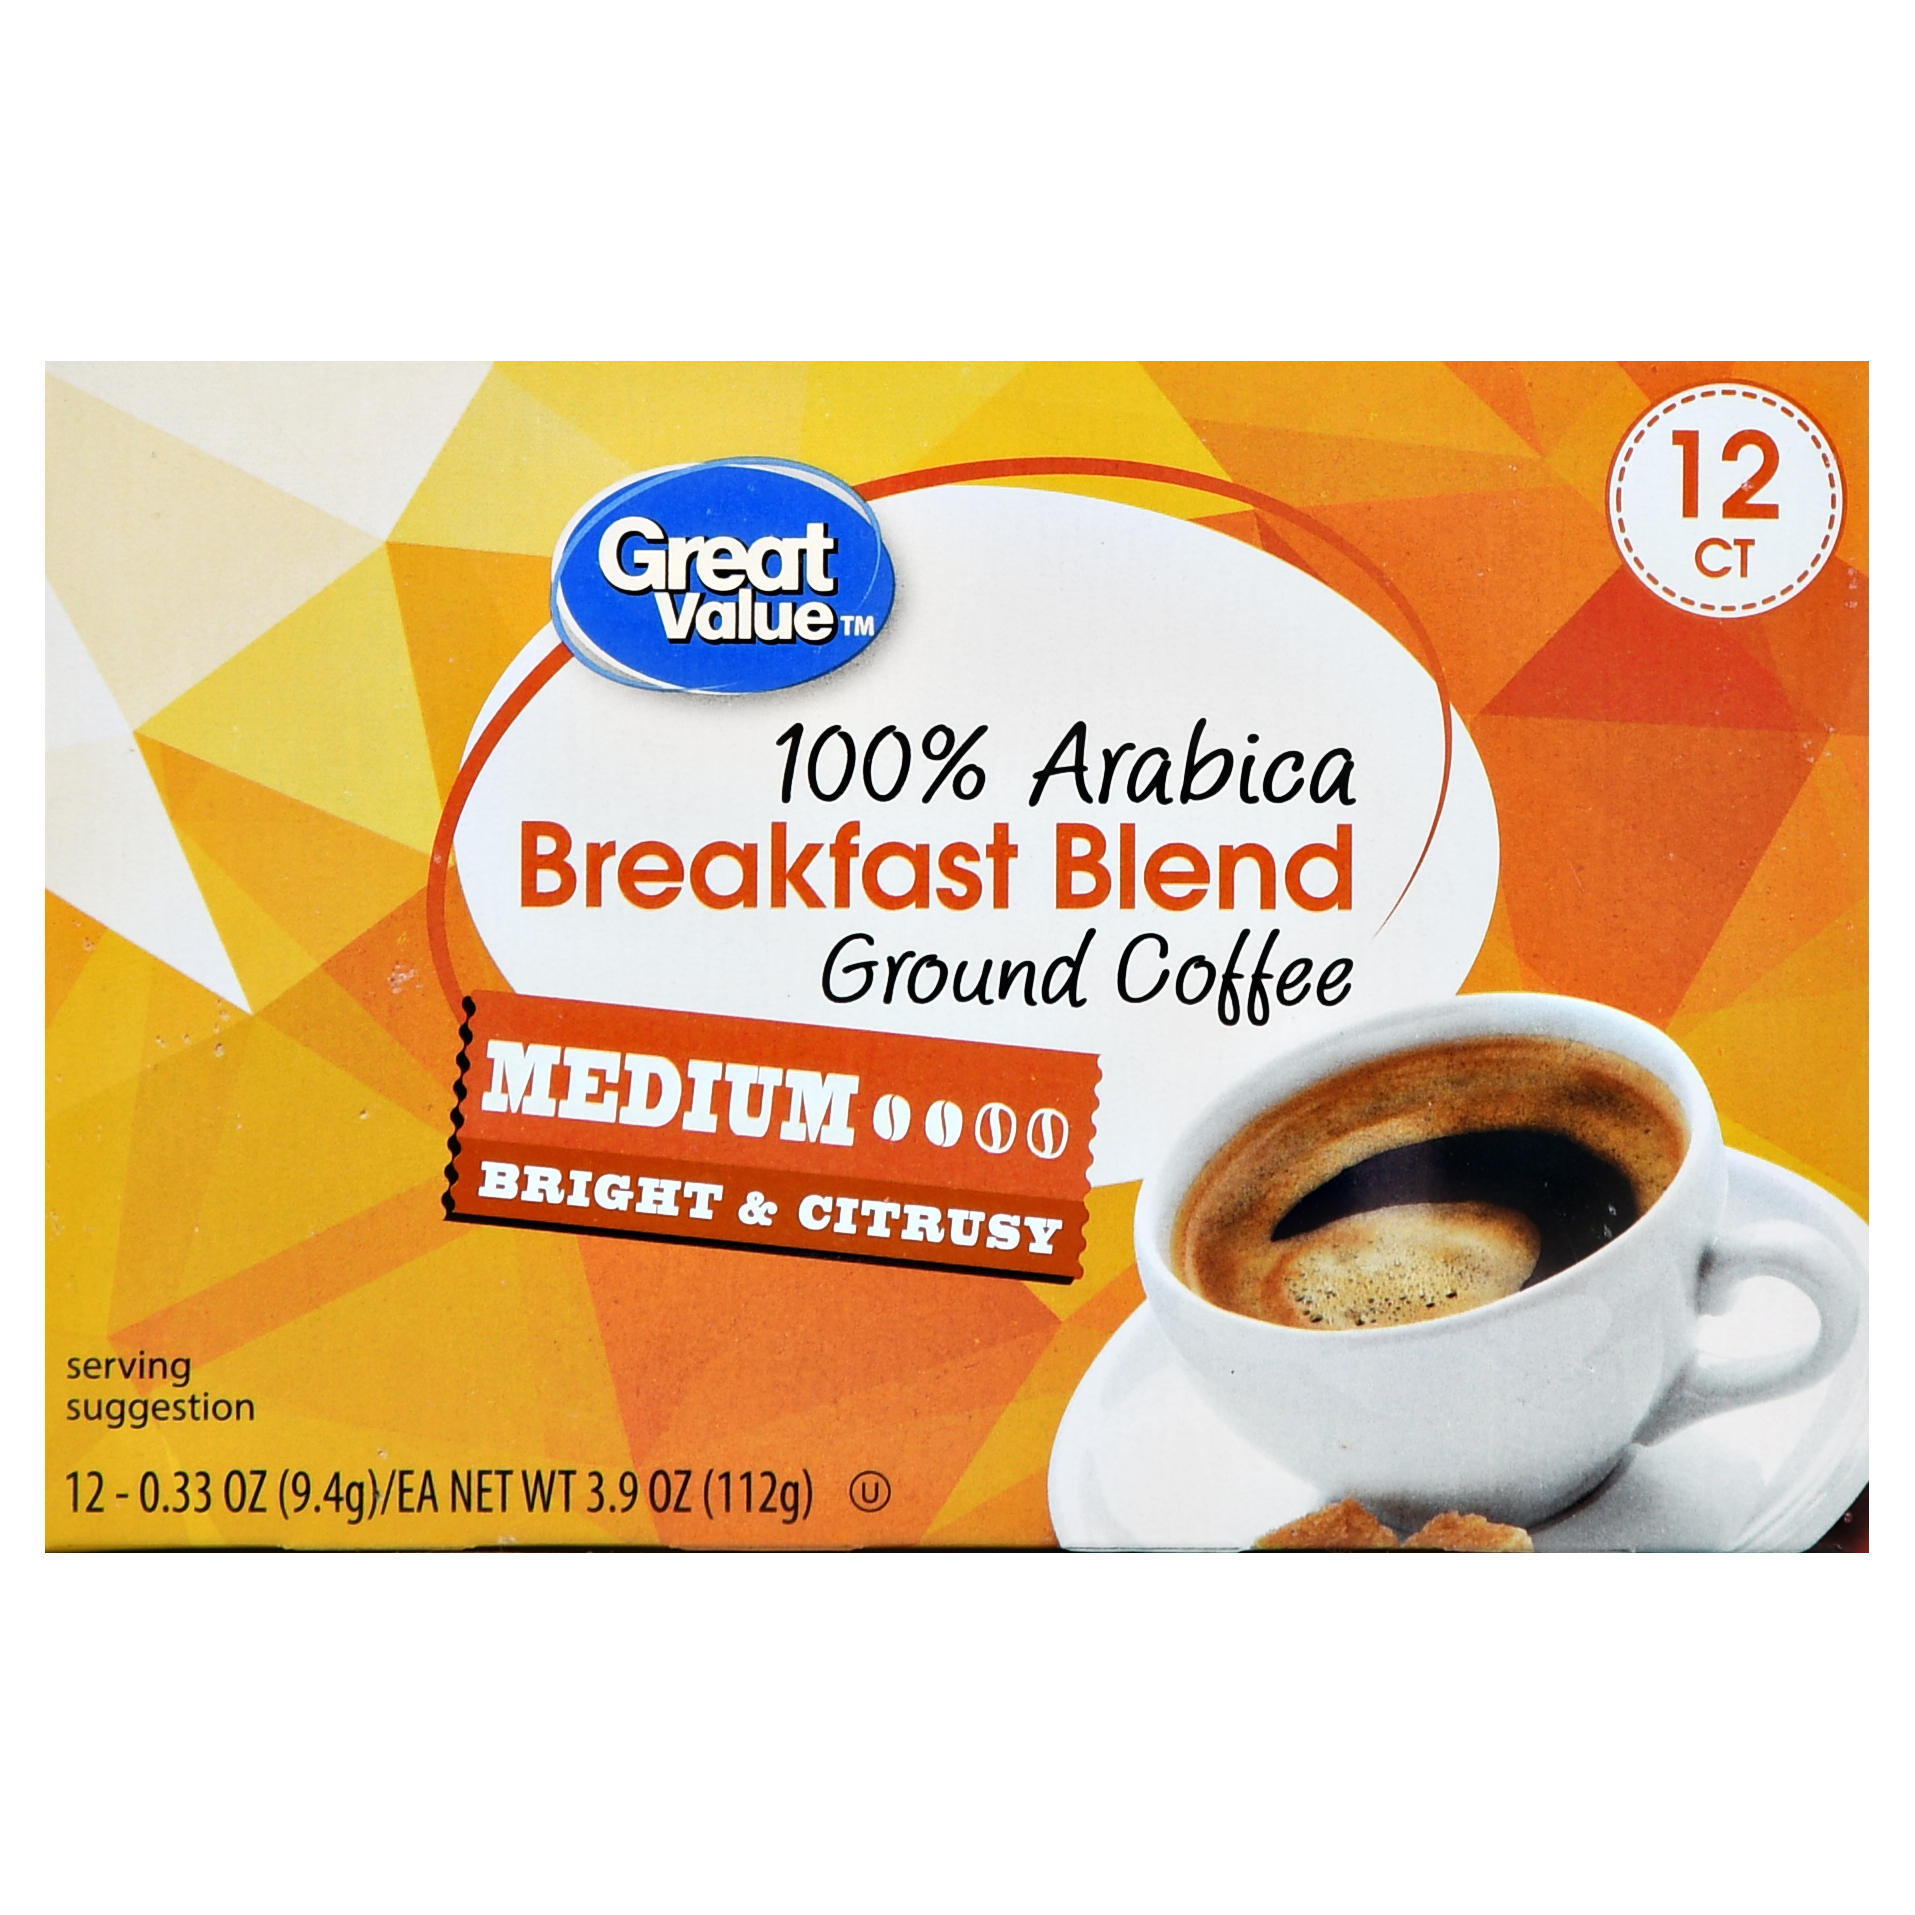 Great Value Breakfast Blend Ground Coffee Single Serve Cups, Medium Roast, 12 Count